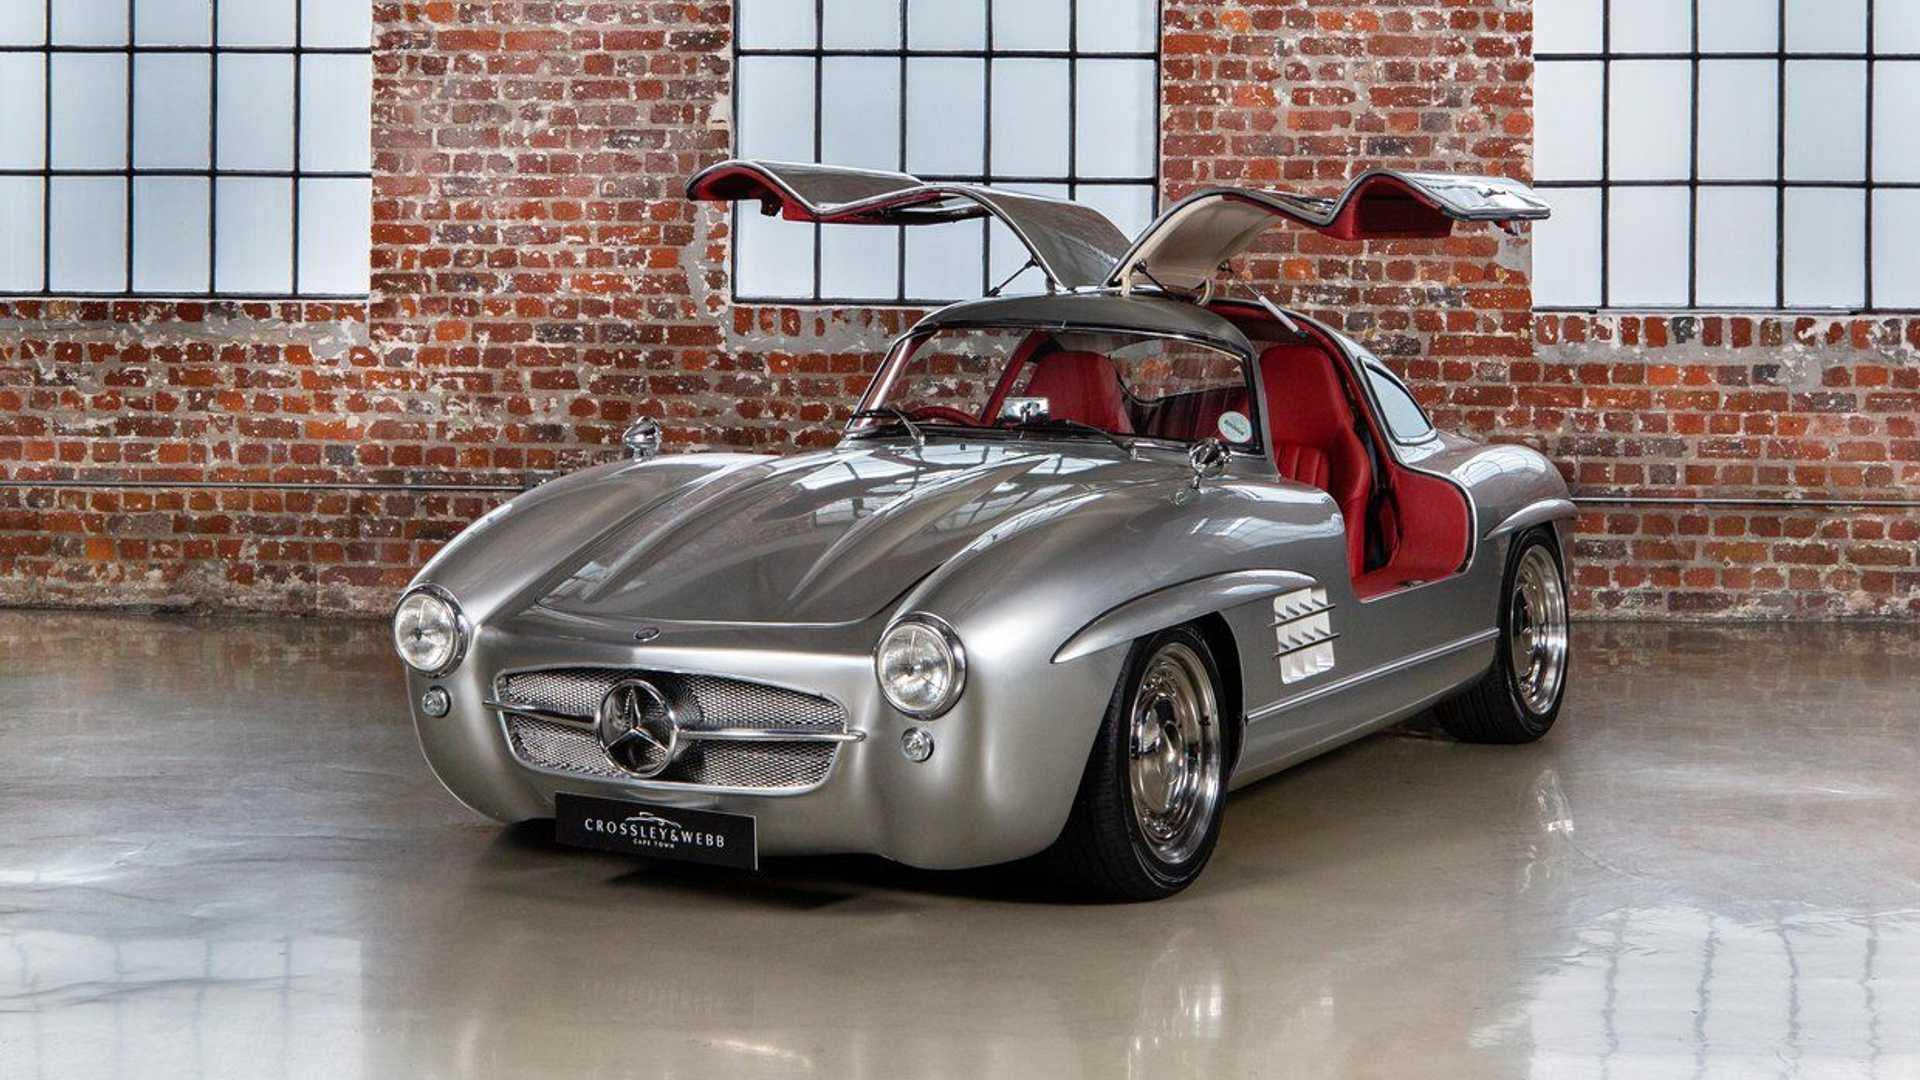 An imitation of the iconic Mercedes-Benz 300SL dating back to the 1950s is currently up for grabs in South Africa. A 2001 Mercedes-AMG SLK 32 provides the underpinnings.